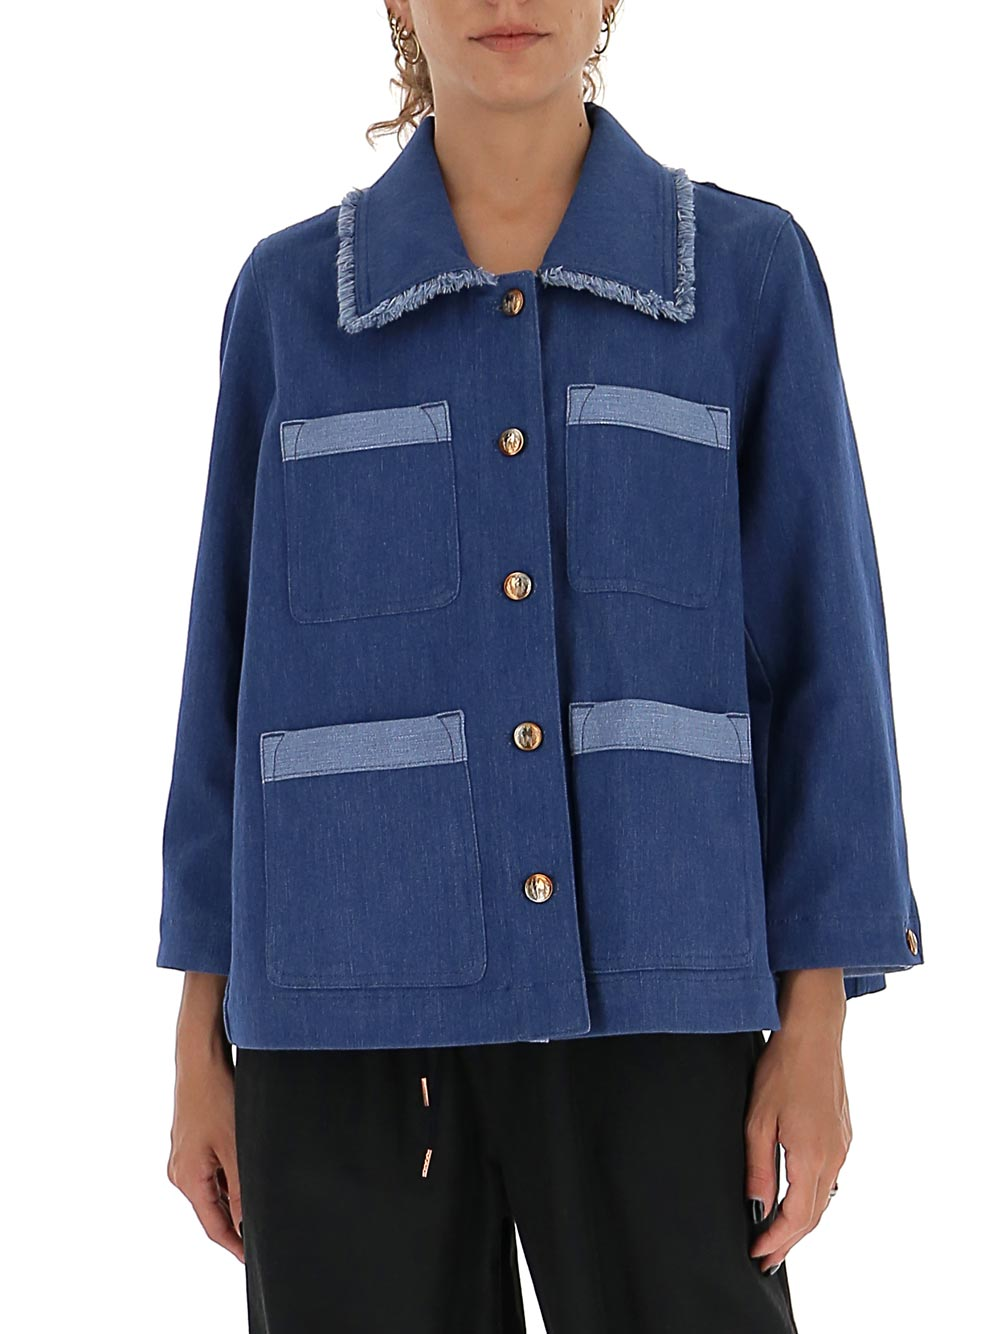 Chloé CHLOÉ CONTRAST DETAILED DENIM JACKET